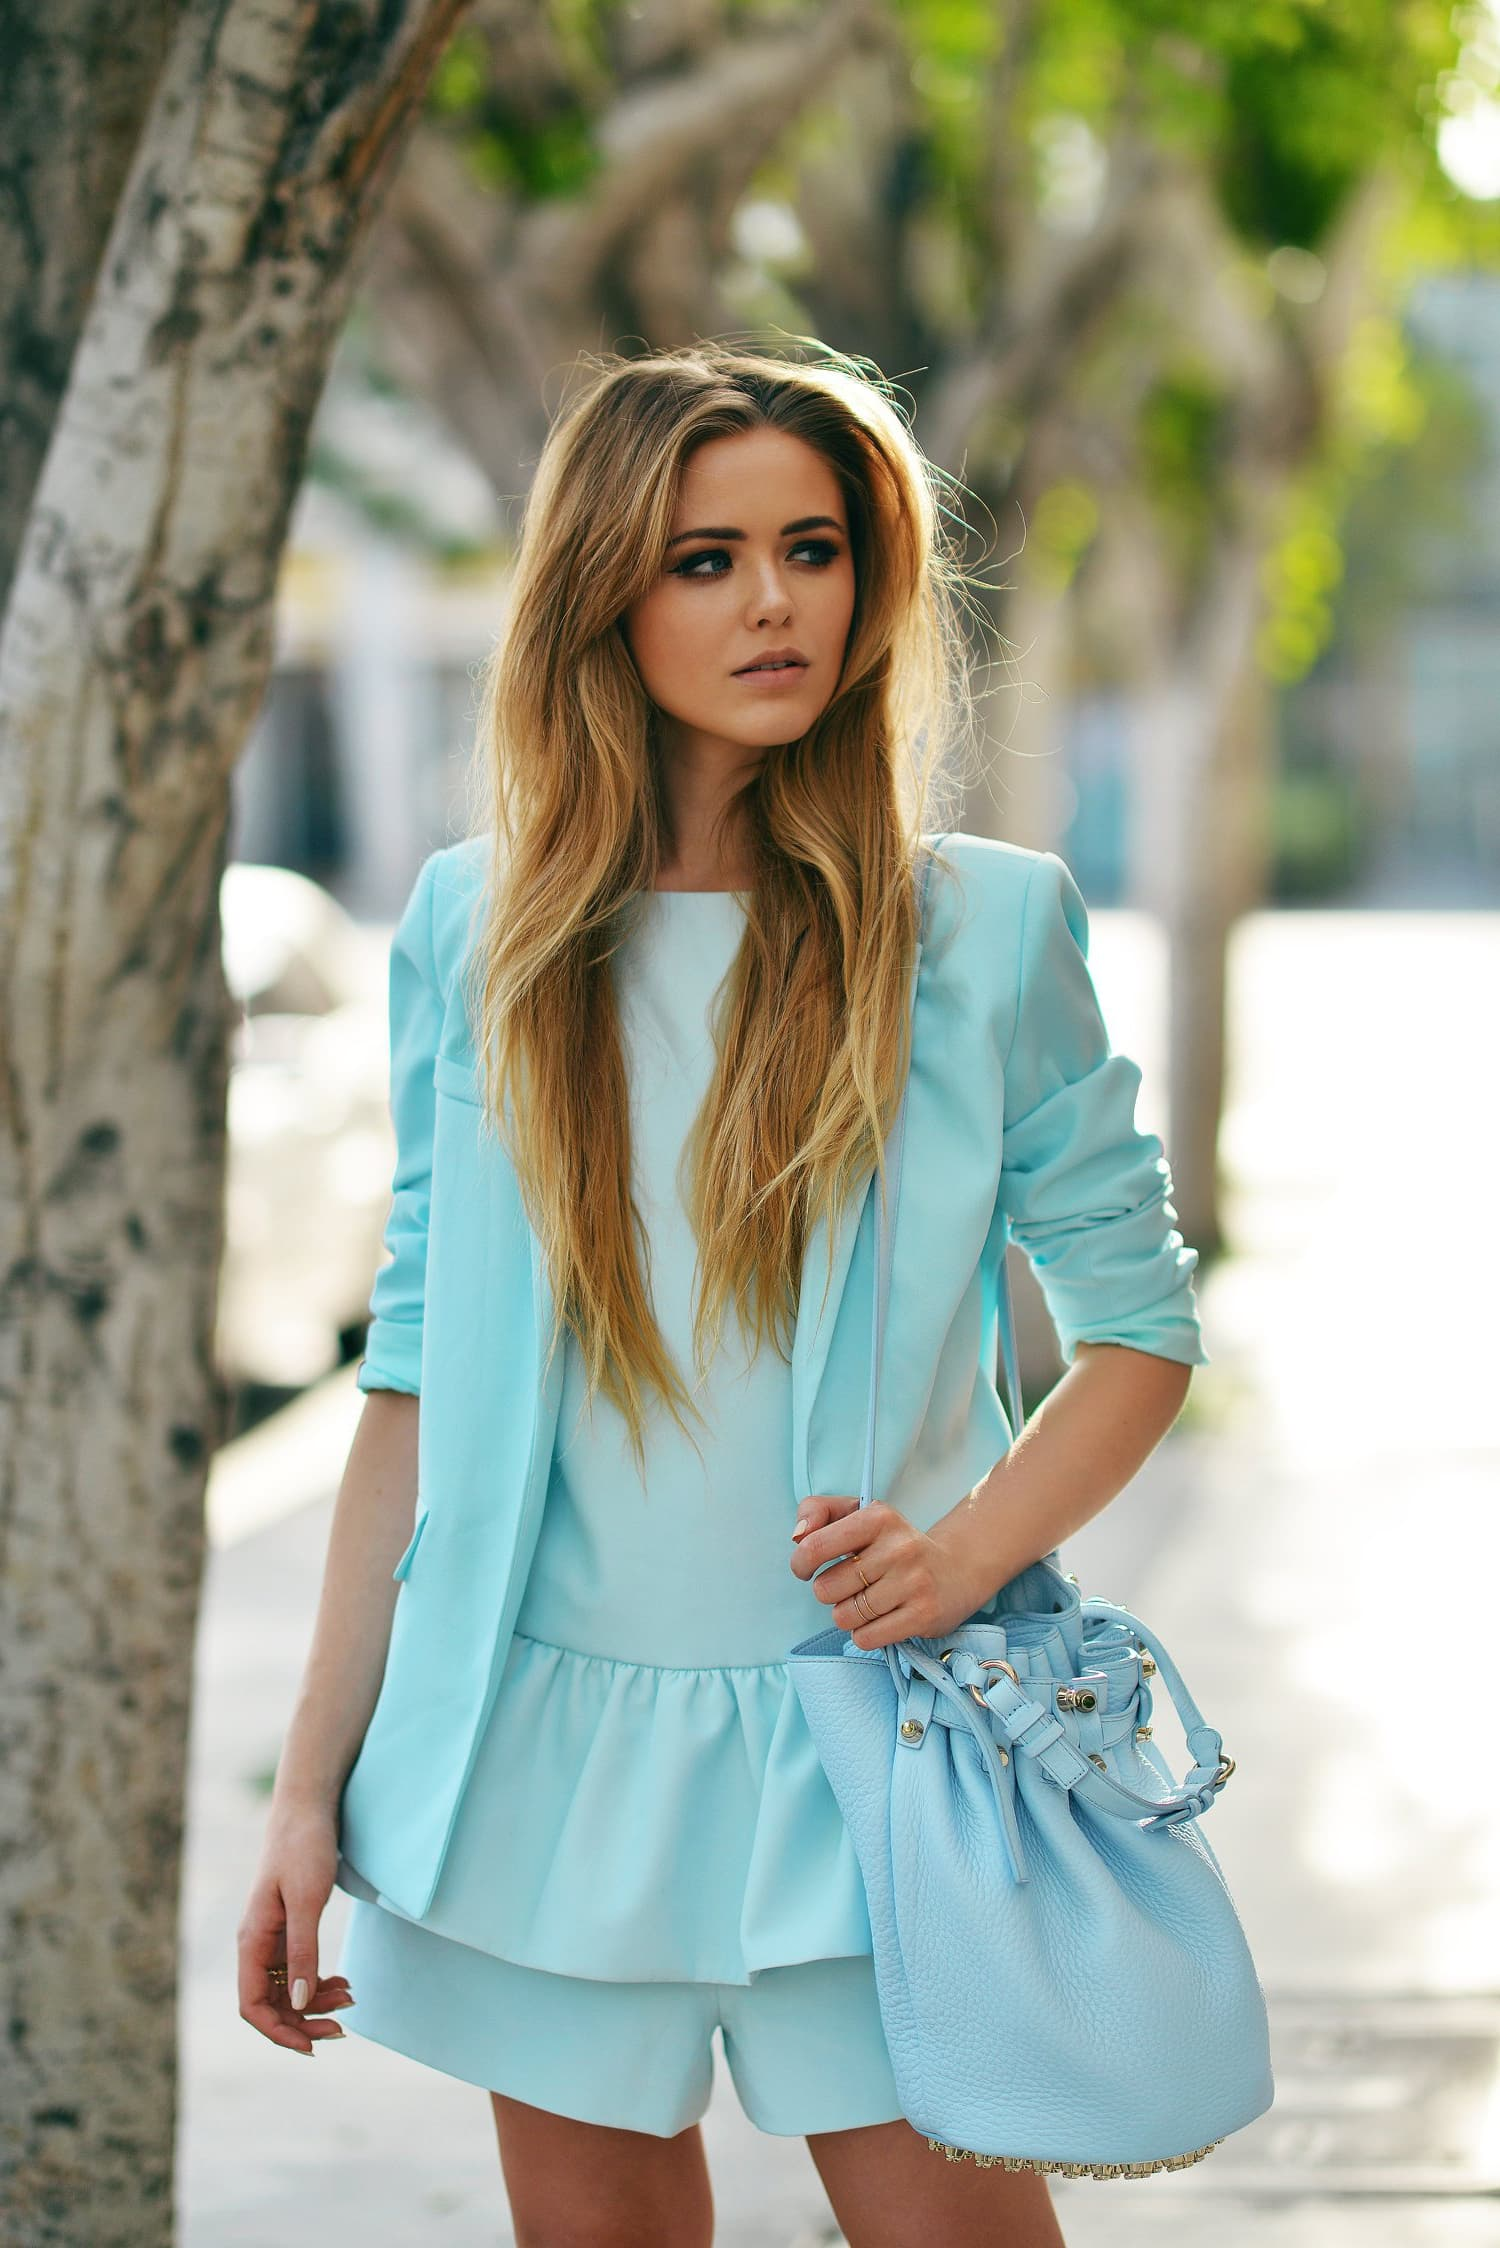 Pictures of Kristina Bazan Street Style full HD